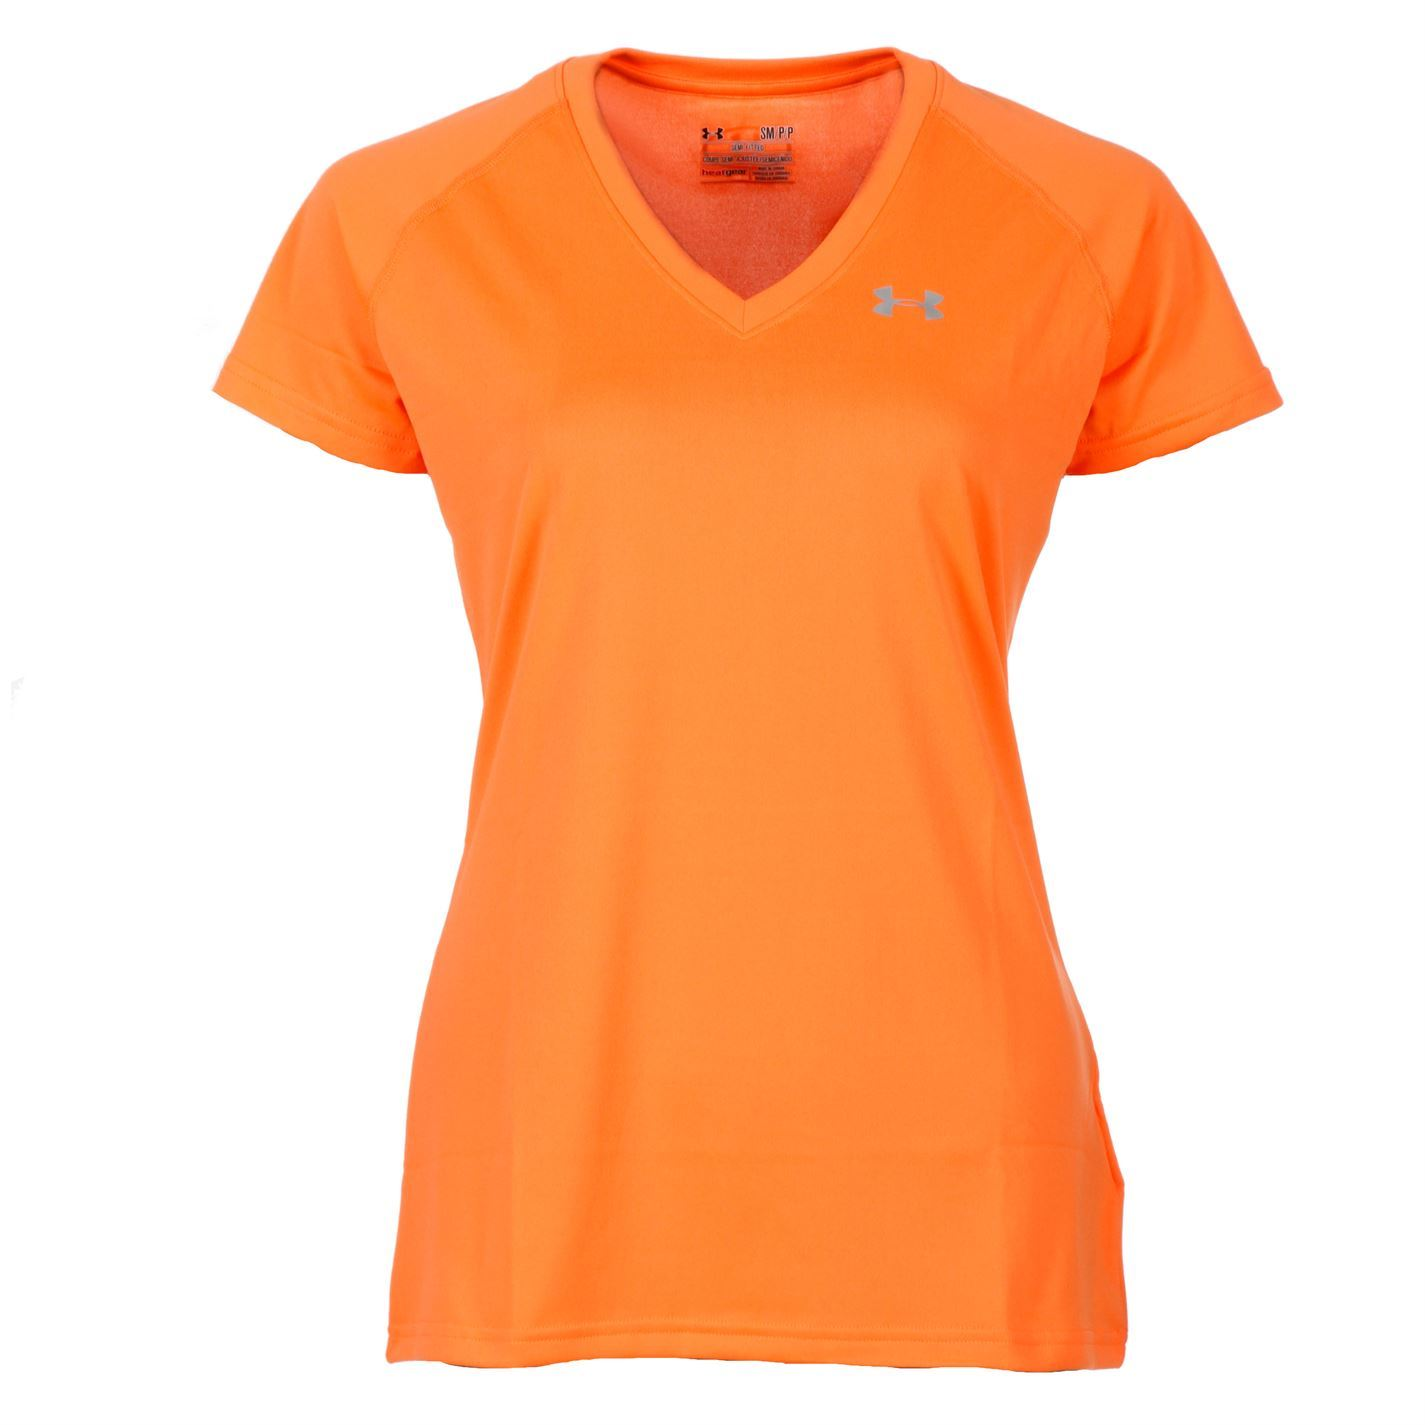 Under Armour Womens Ladies Tech Ss Short Sleeves V Neck T